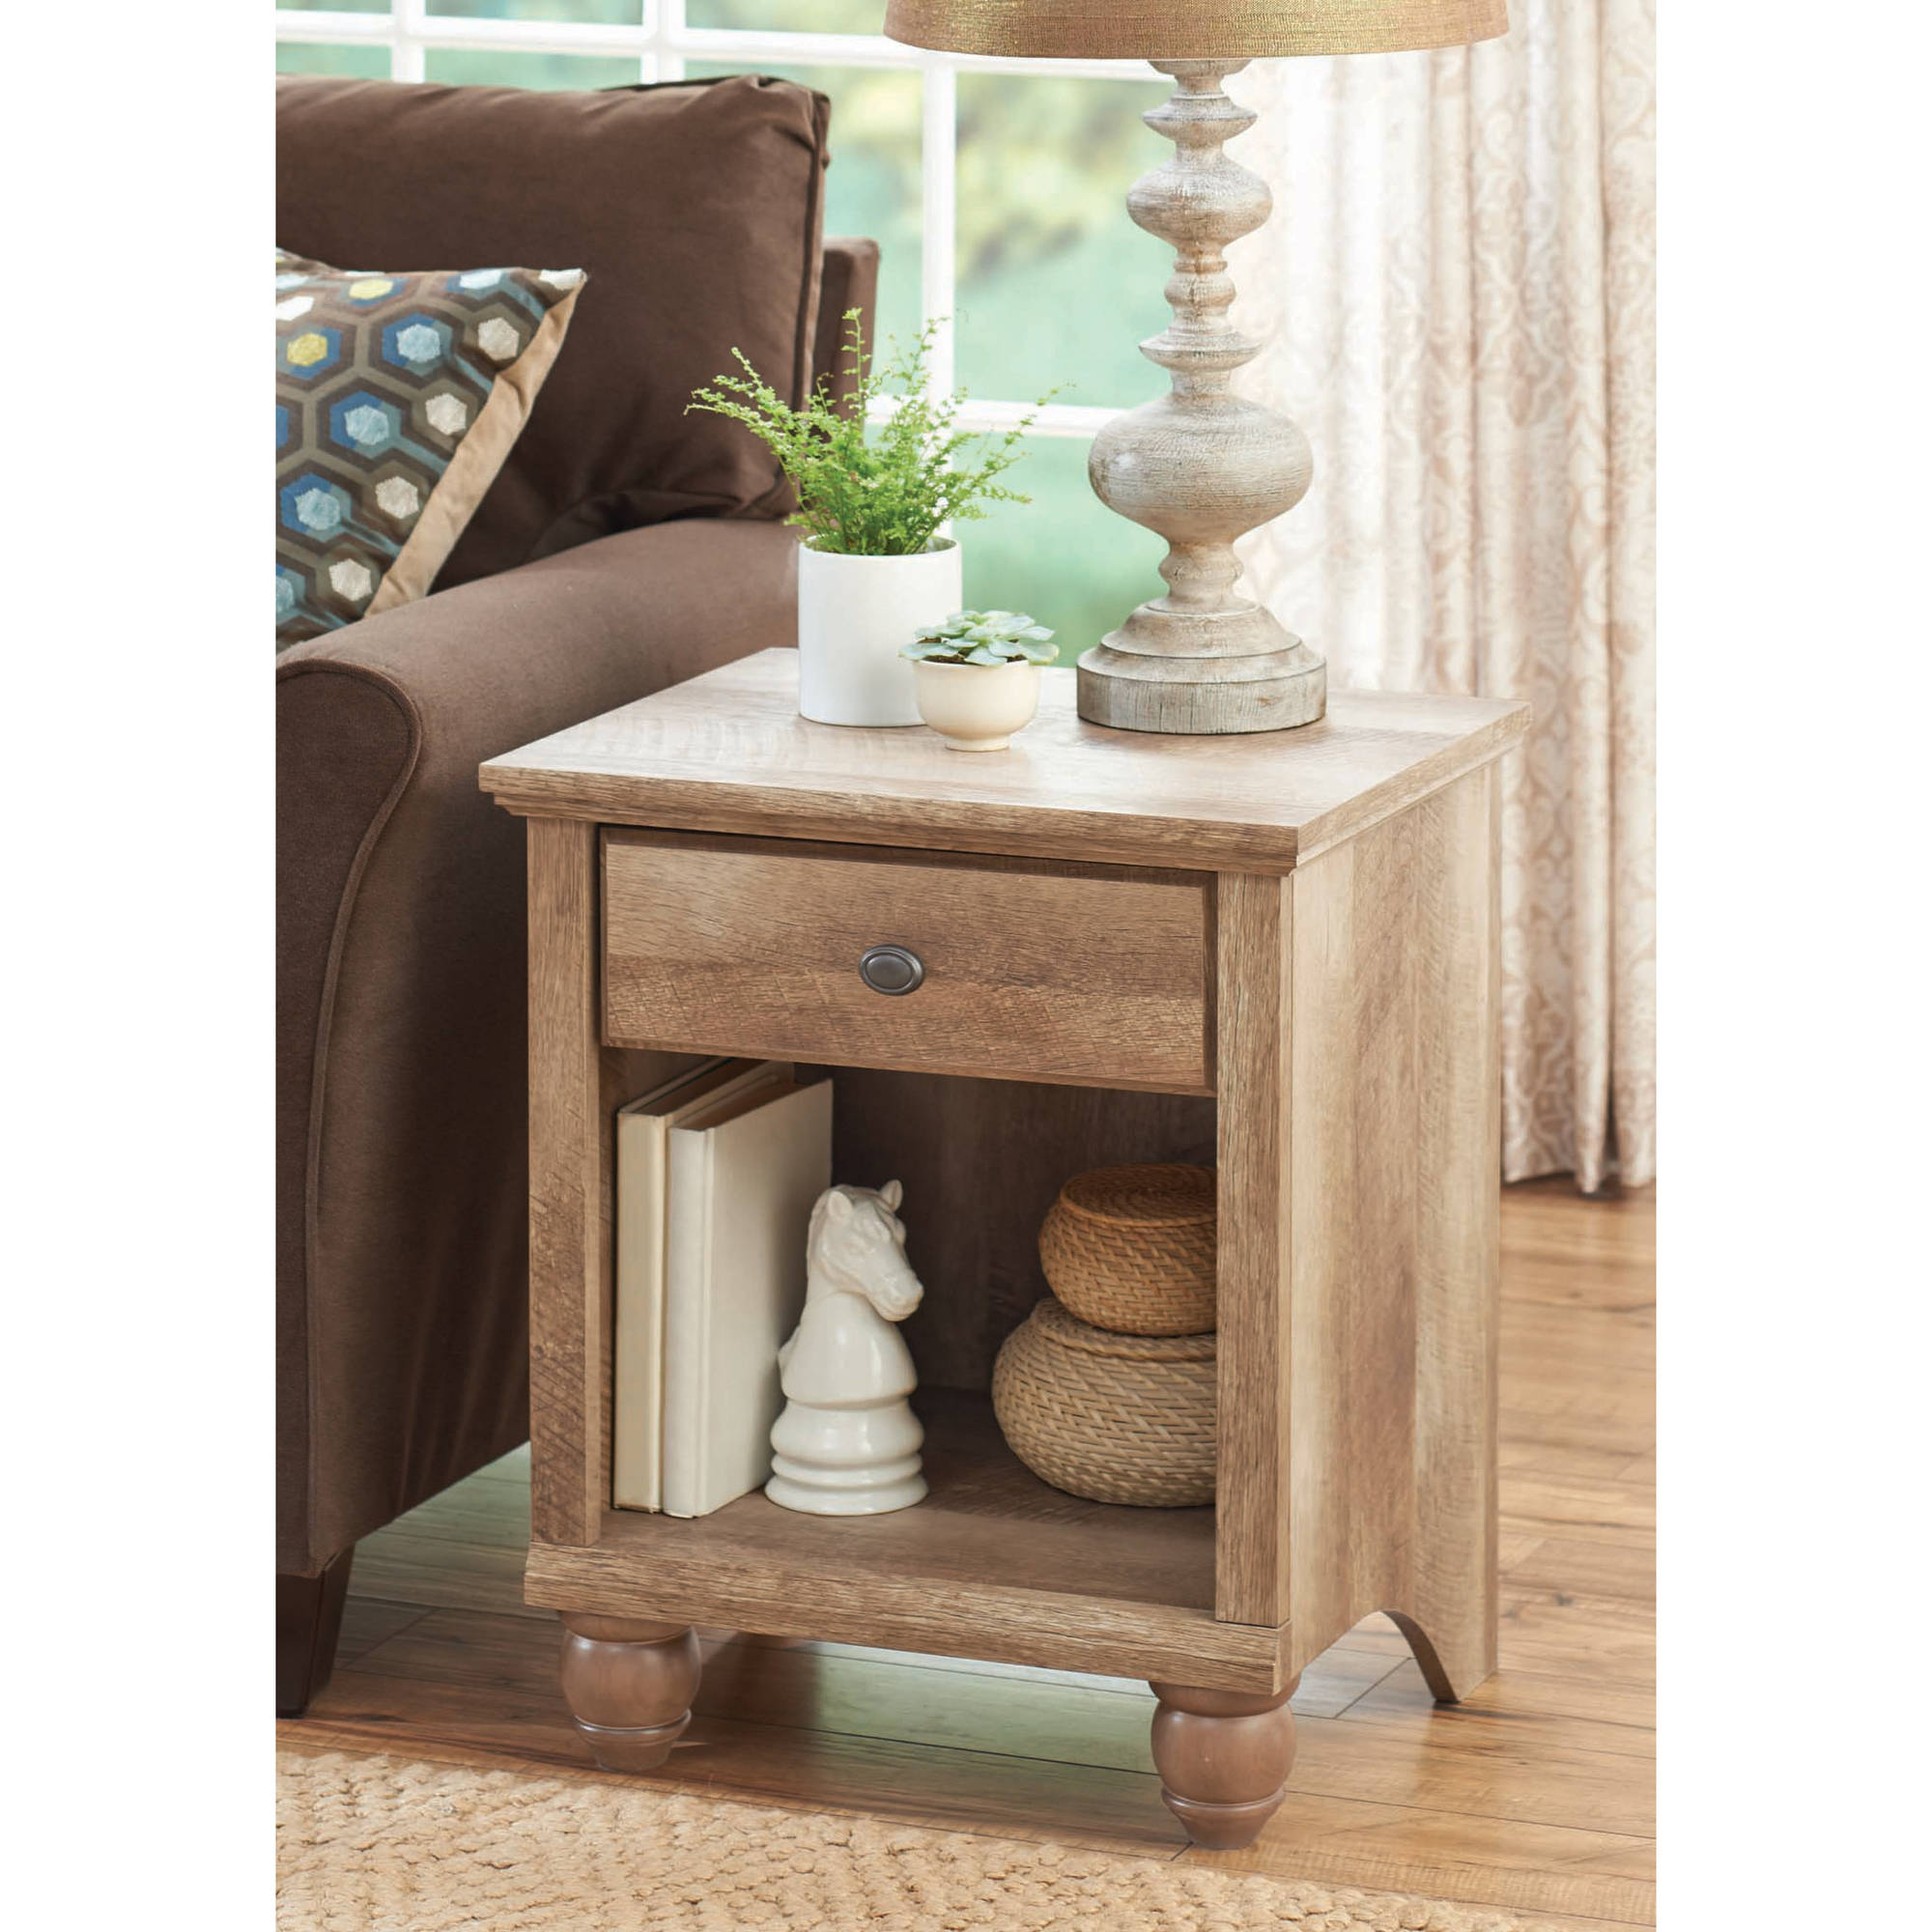 better homes gardens crossmill accent table weathered finish end tables drum set cymbals making legs black mirrored cabinet side drawers small with adjustable clear lucite coffee